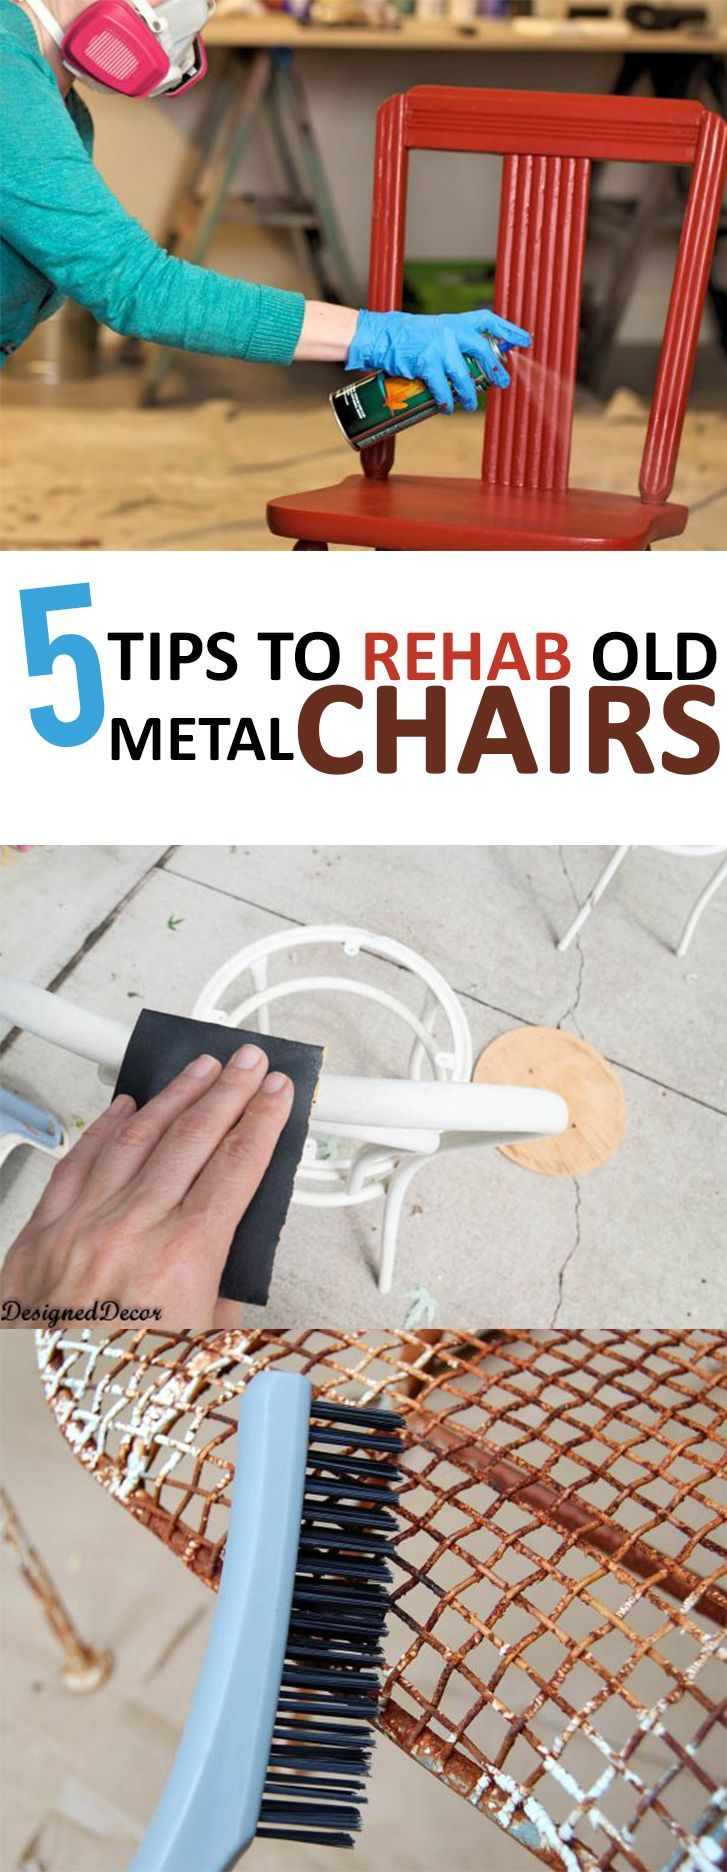 Metal chairs, rehabbing metal chairs, DIY metal chair rehab, outdoor furniture, DIY outdoor furniture, popular pin, furniture flips, how to flip furniture